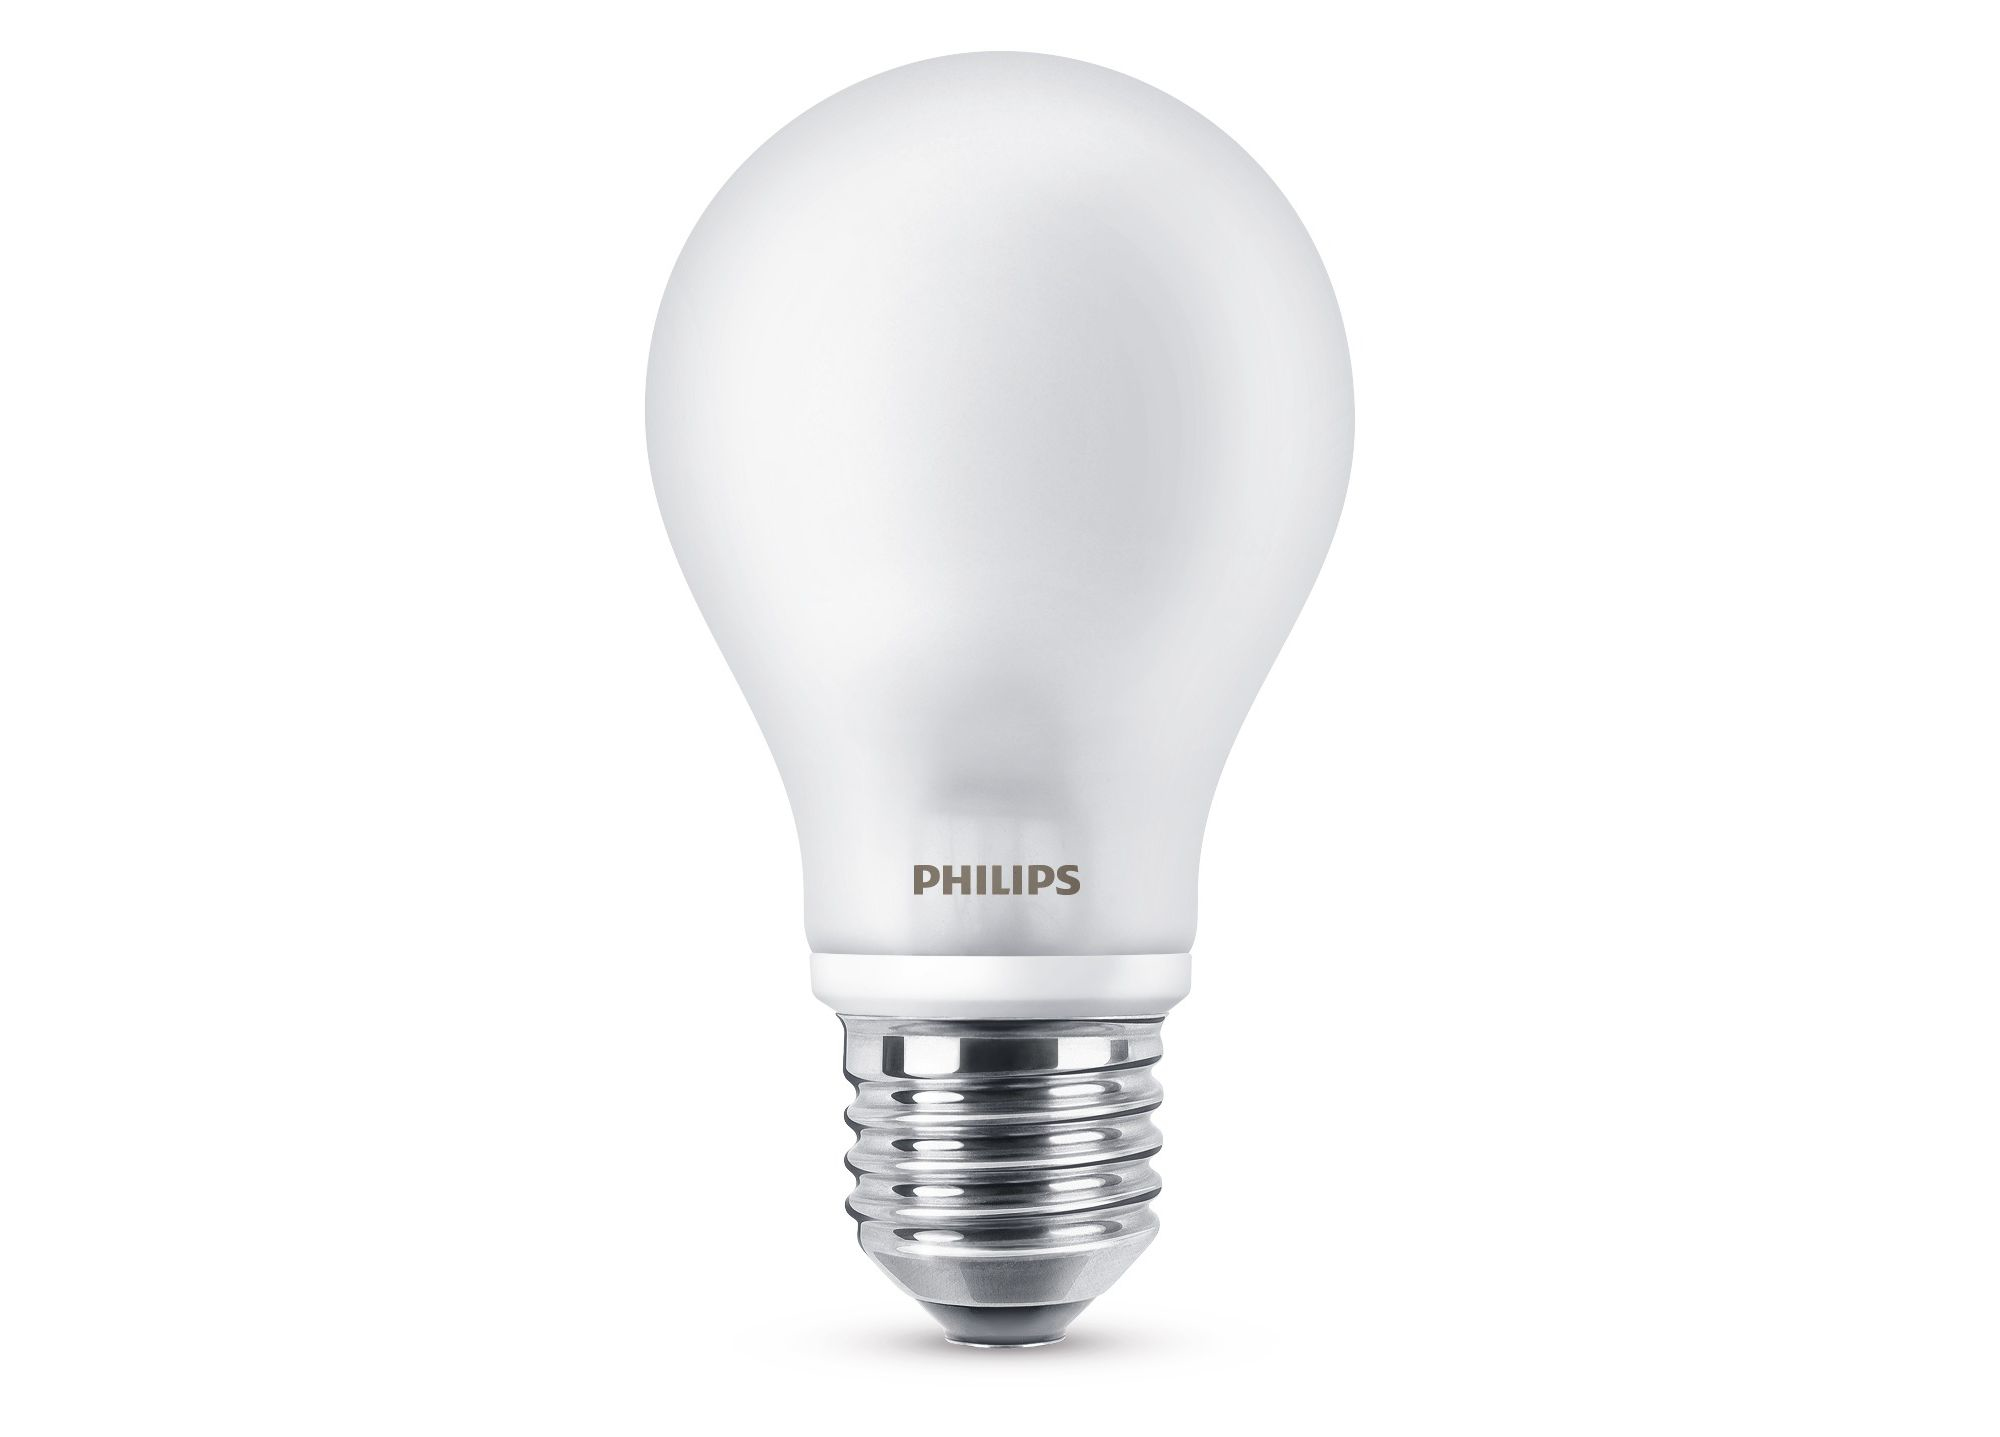 Philips - Lampadina a LED - Incaled60840